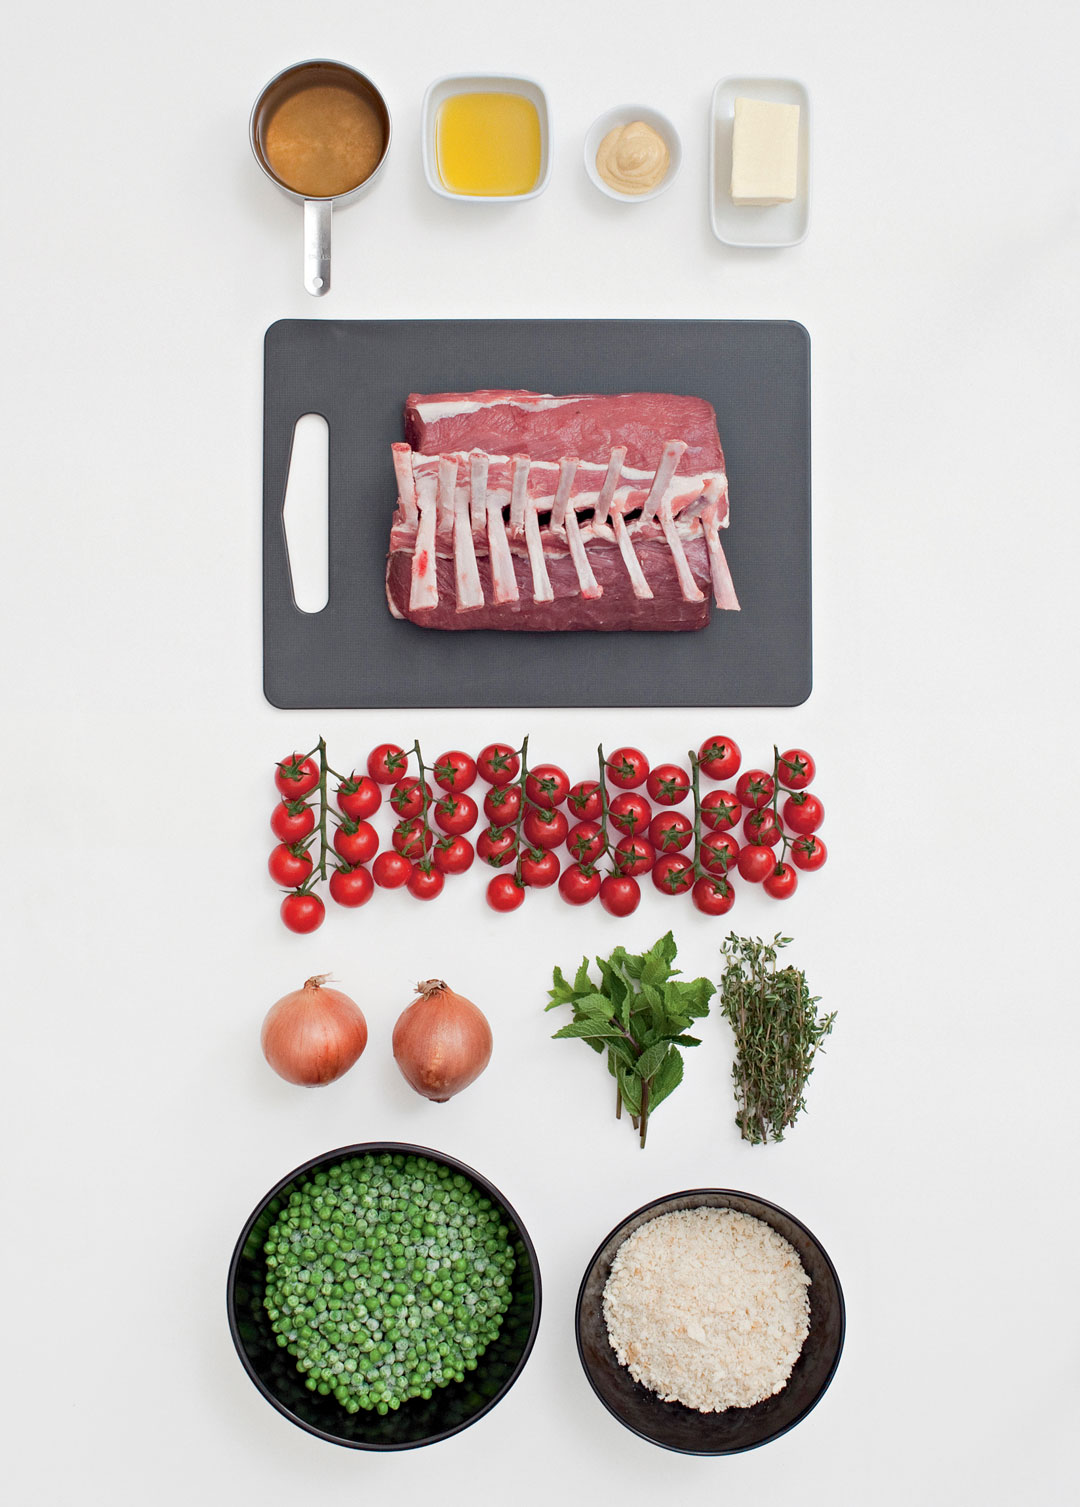 The ingredients for herb crusted lamb